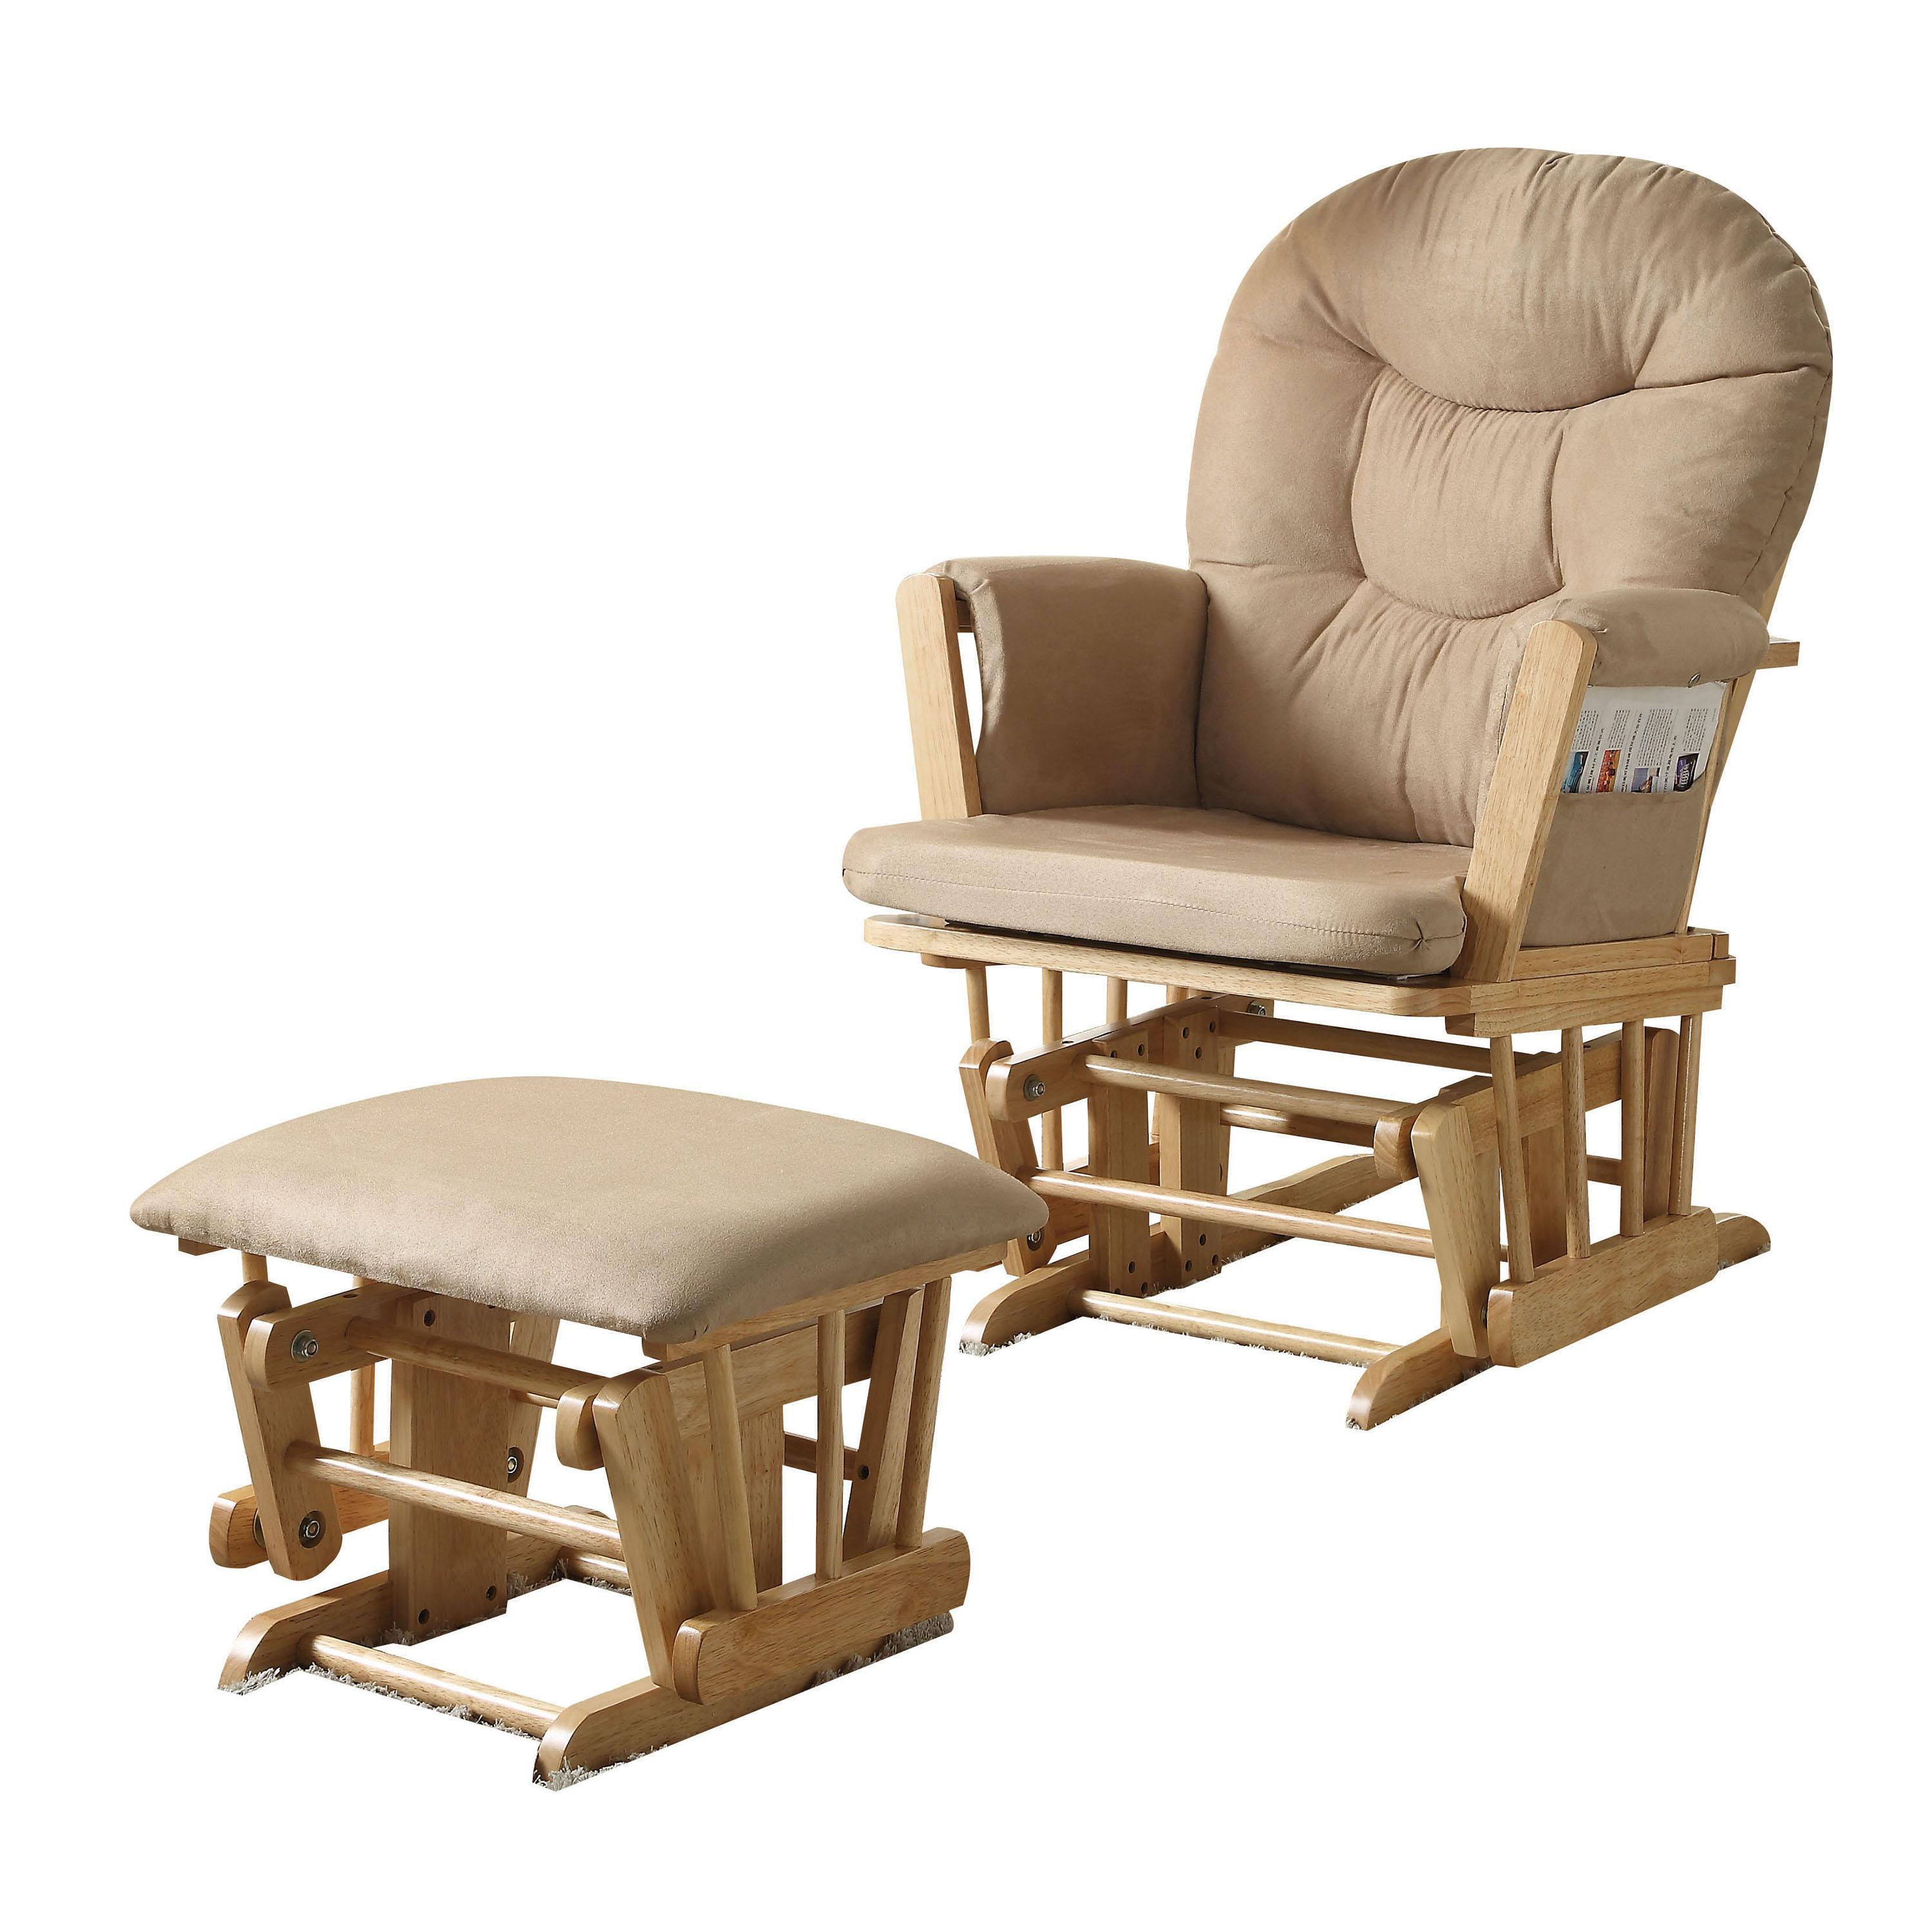 Acme Furniture Rehan 2pc Glider Chair And Ottoman Set